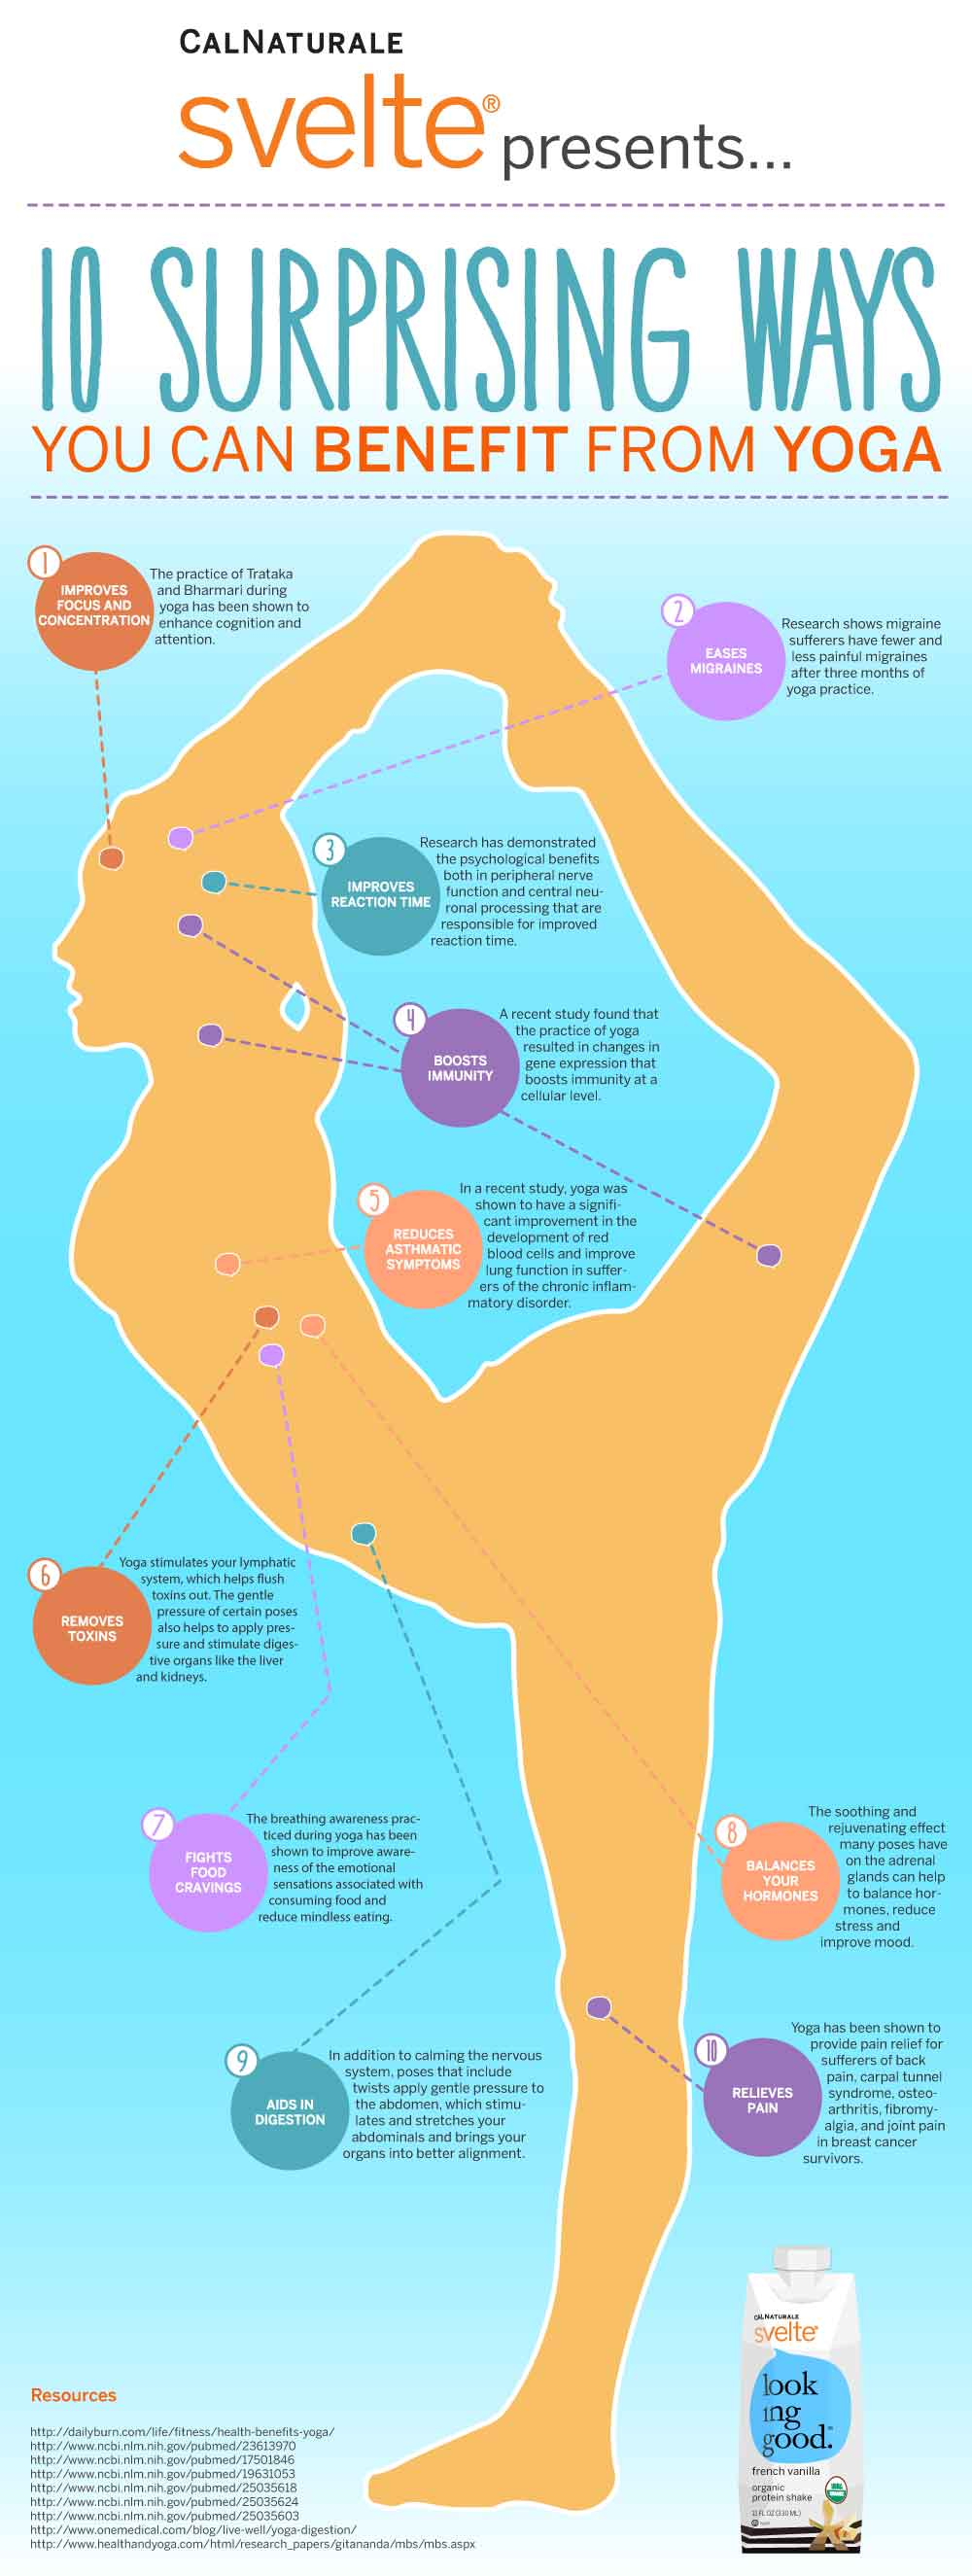 surprising ways you can Benefits from Yoga